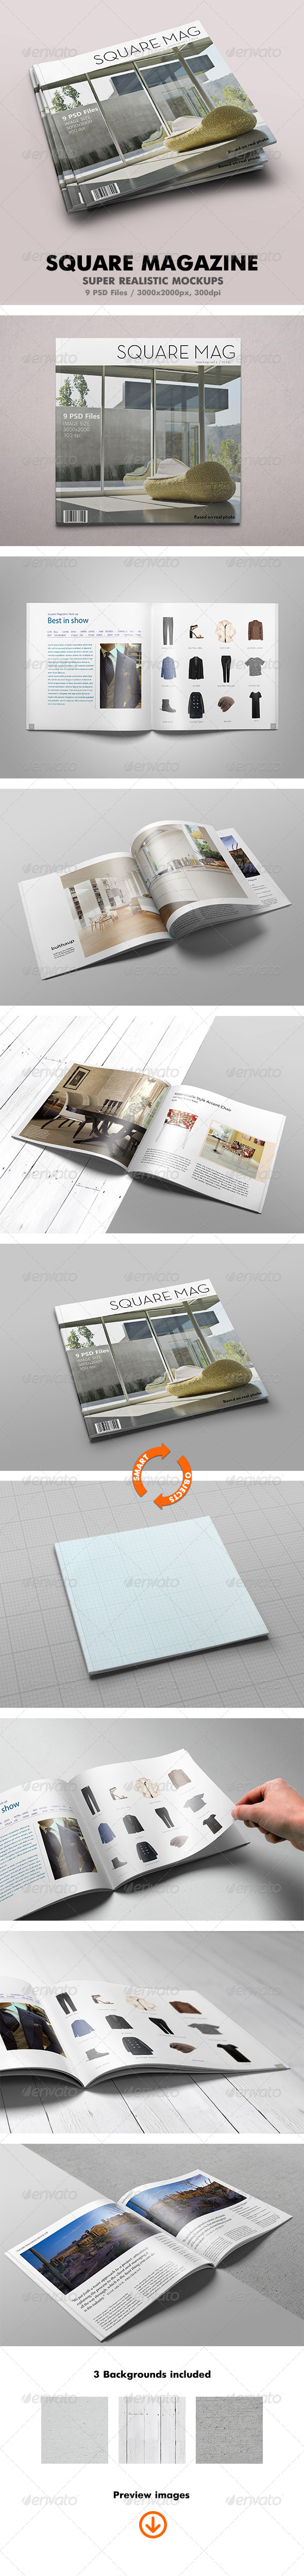 Square Magazine Mock-Up - Magazines Print